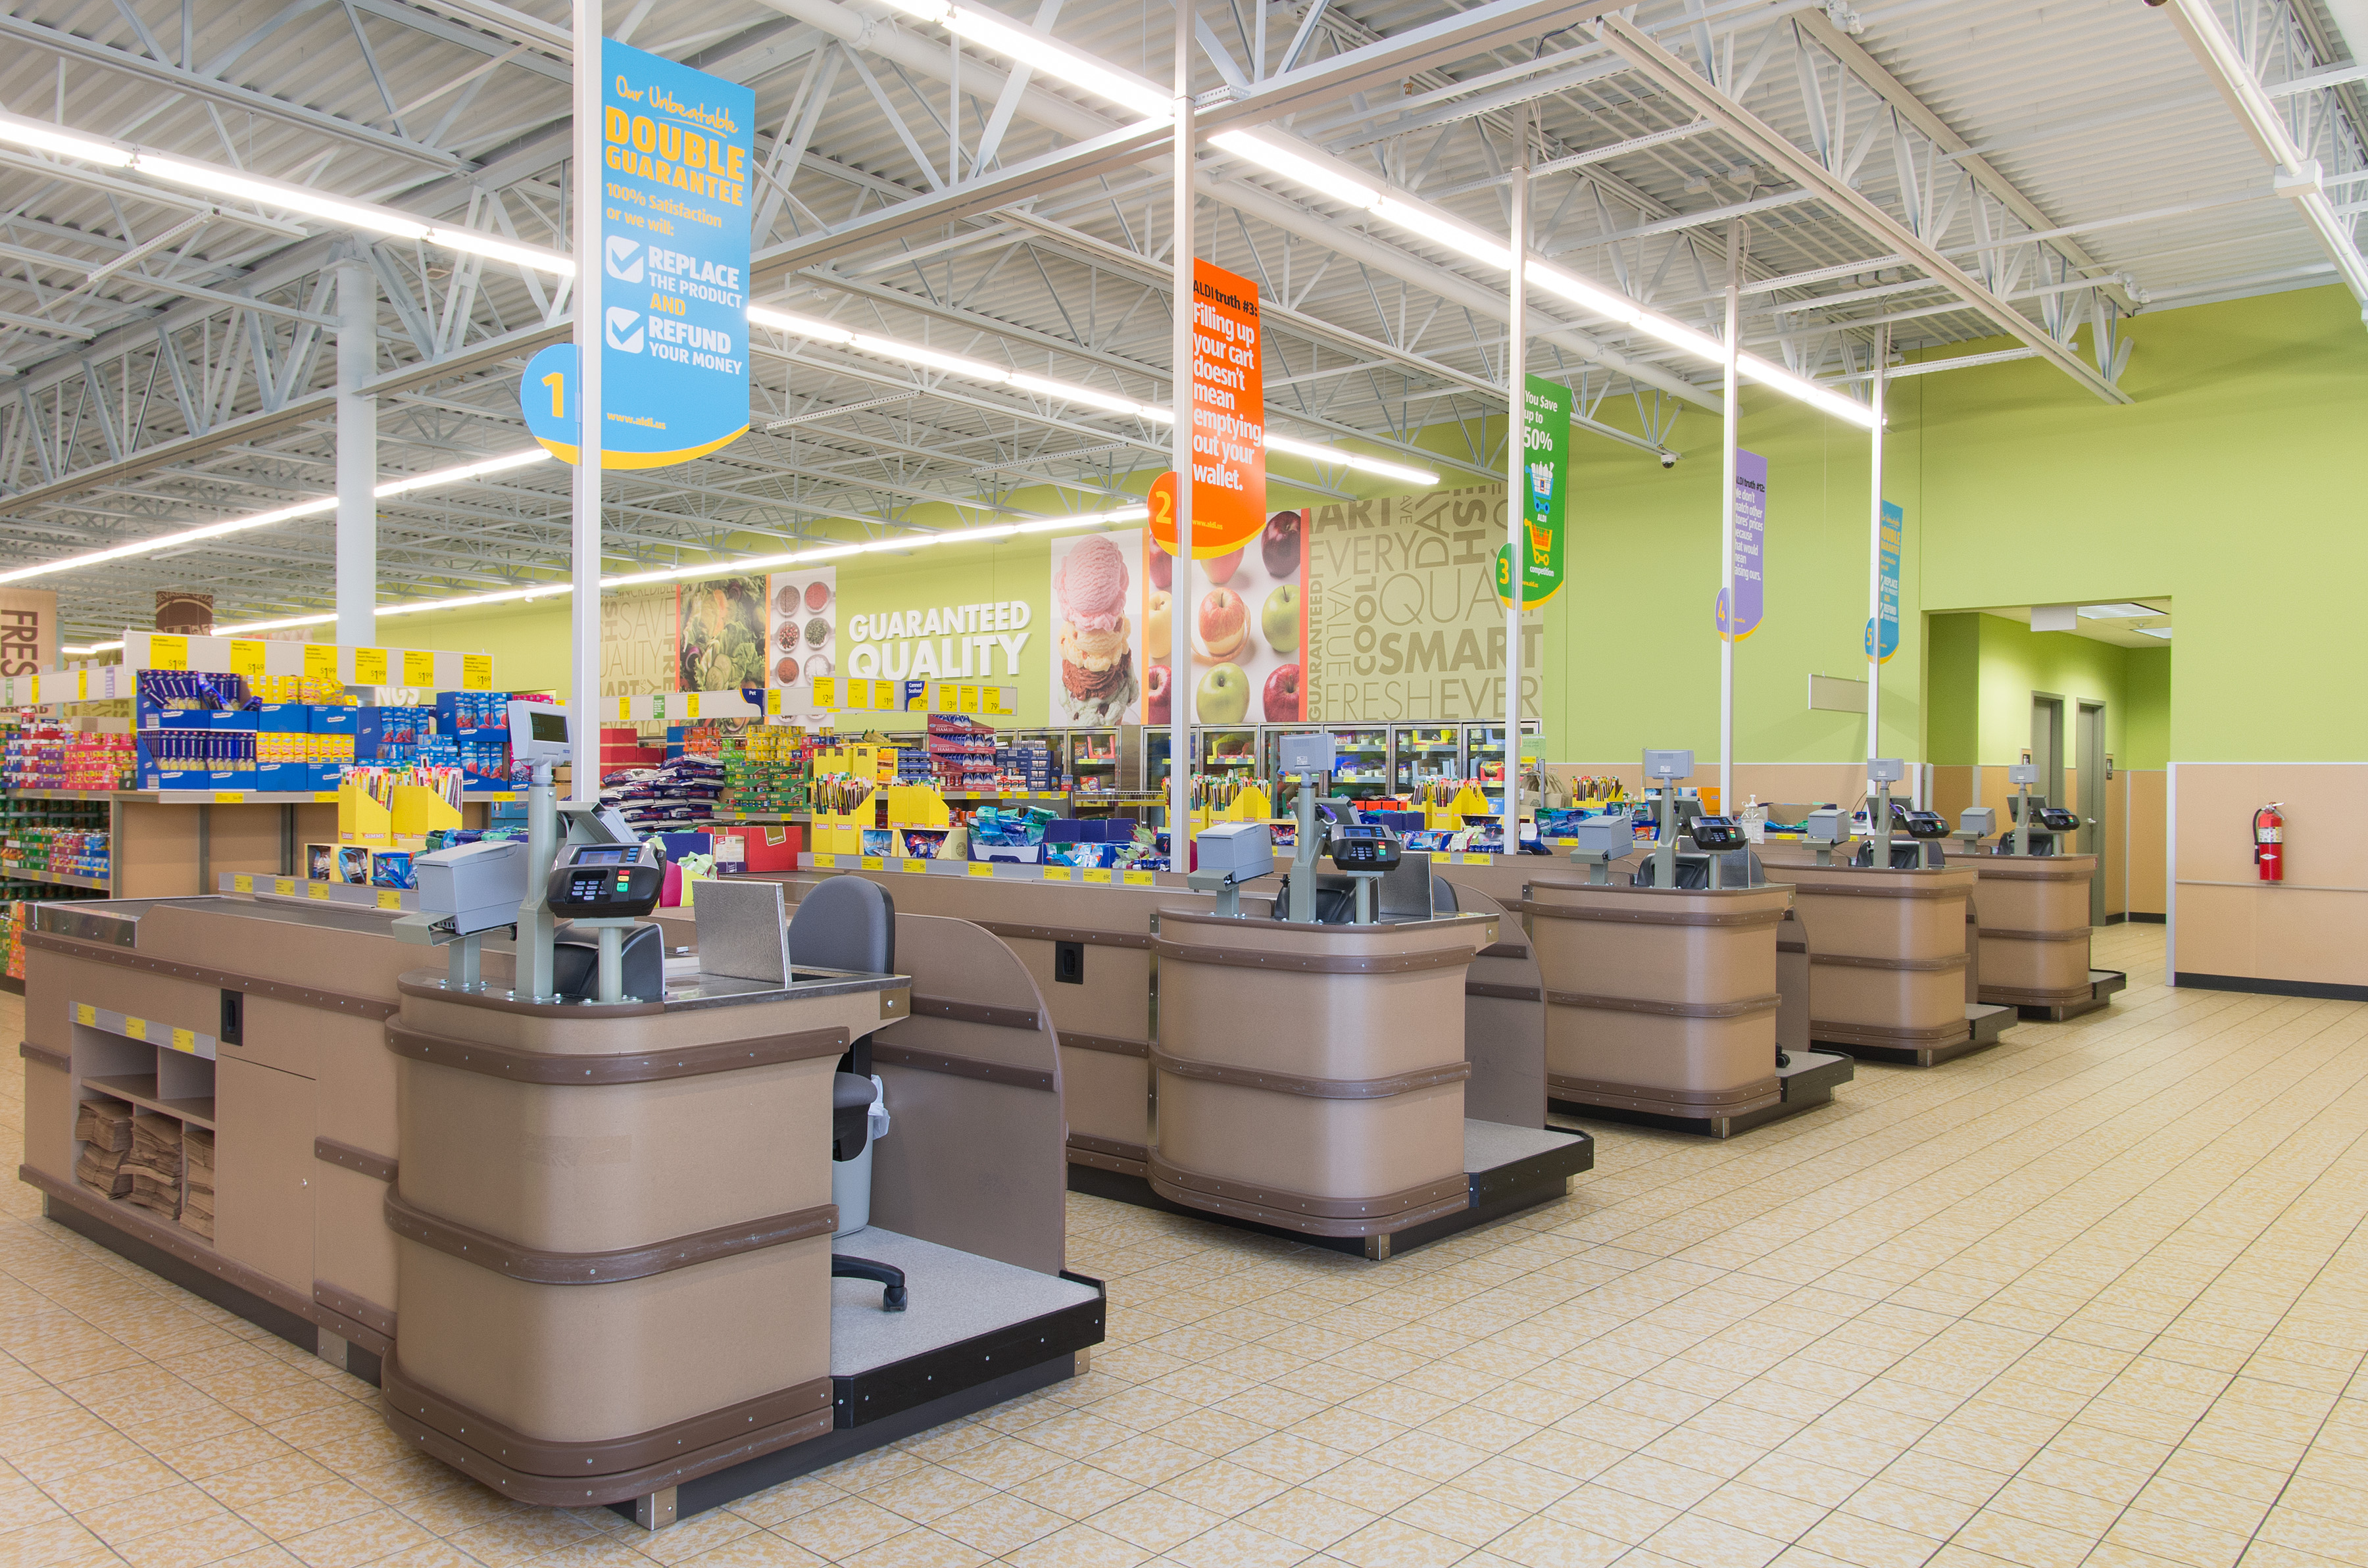 Aldi introduces Healthier Checklanes